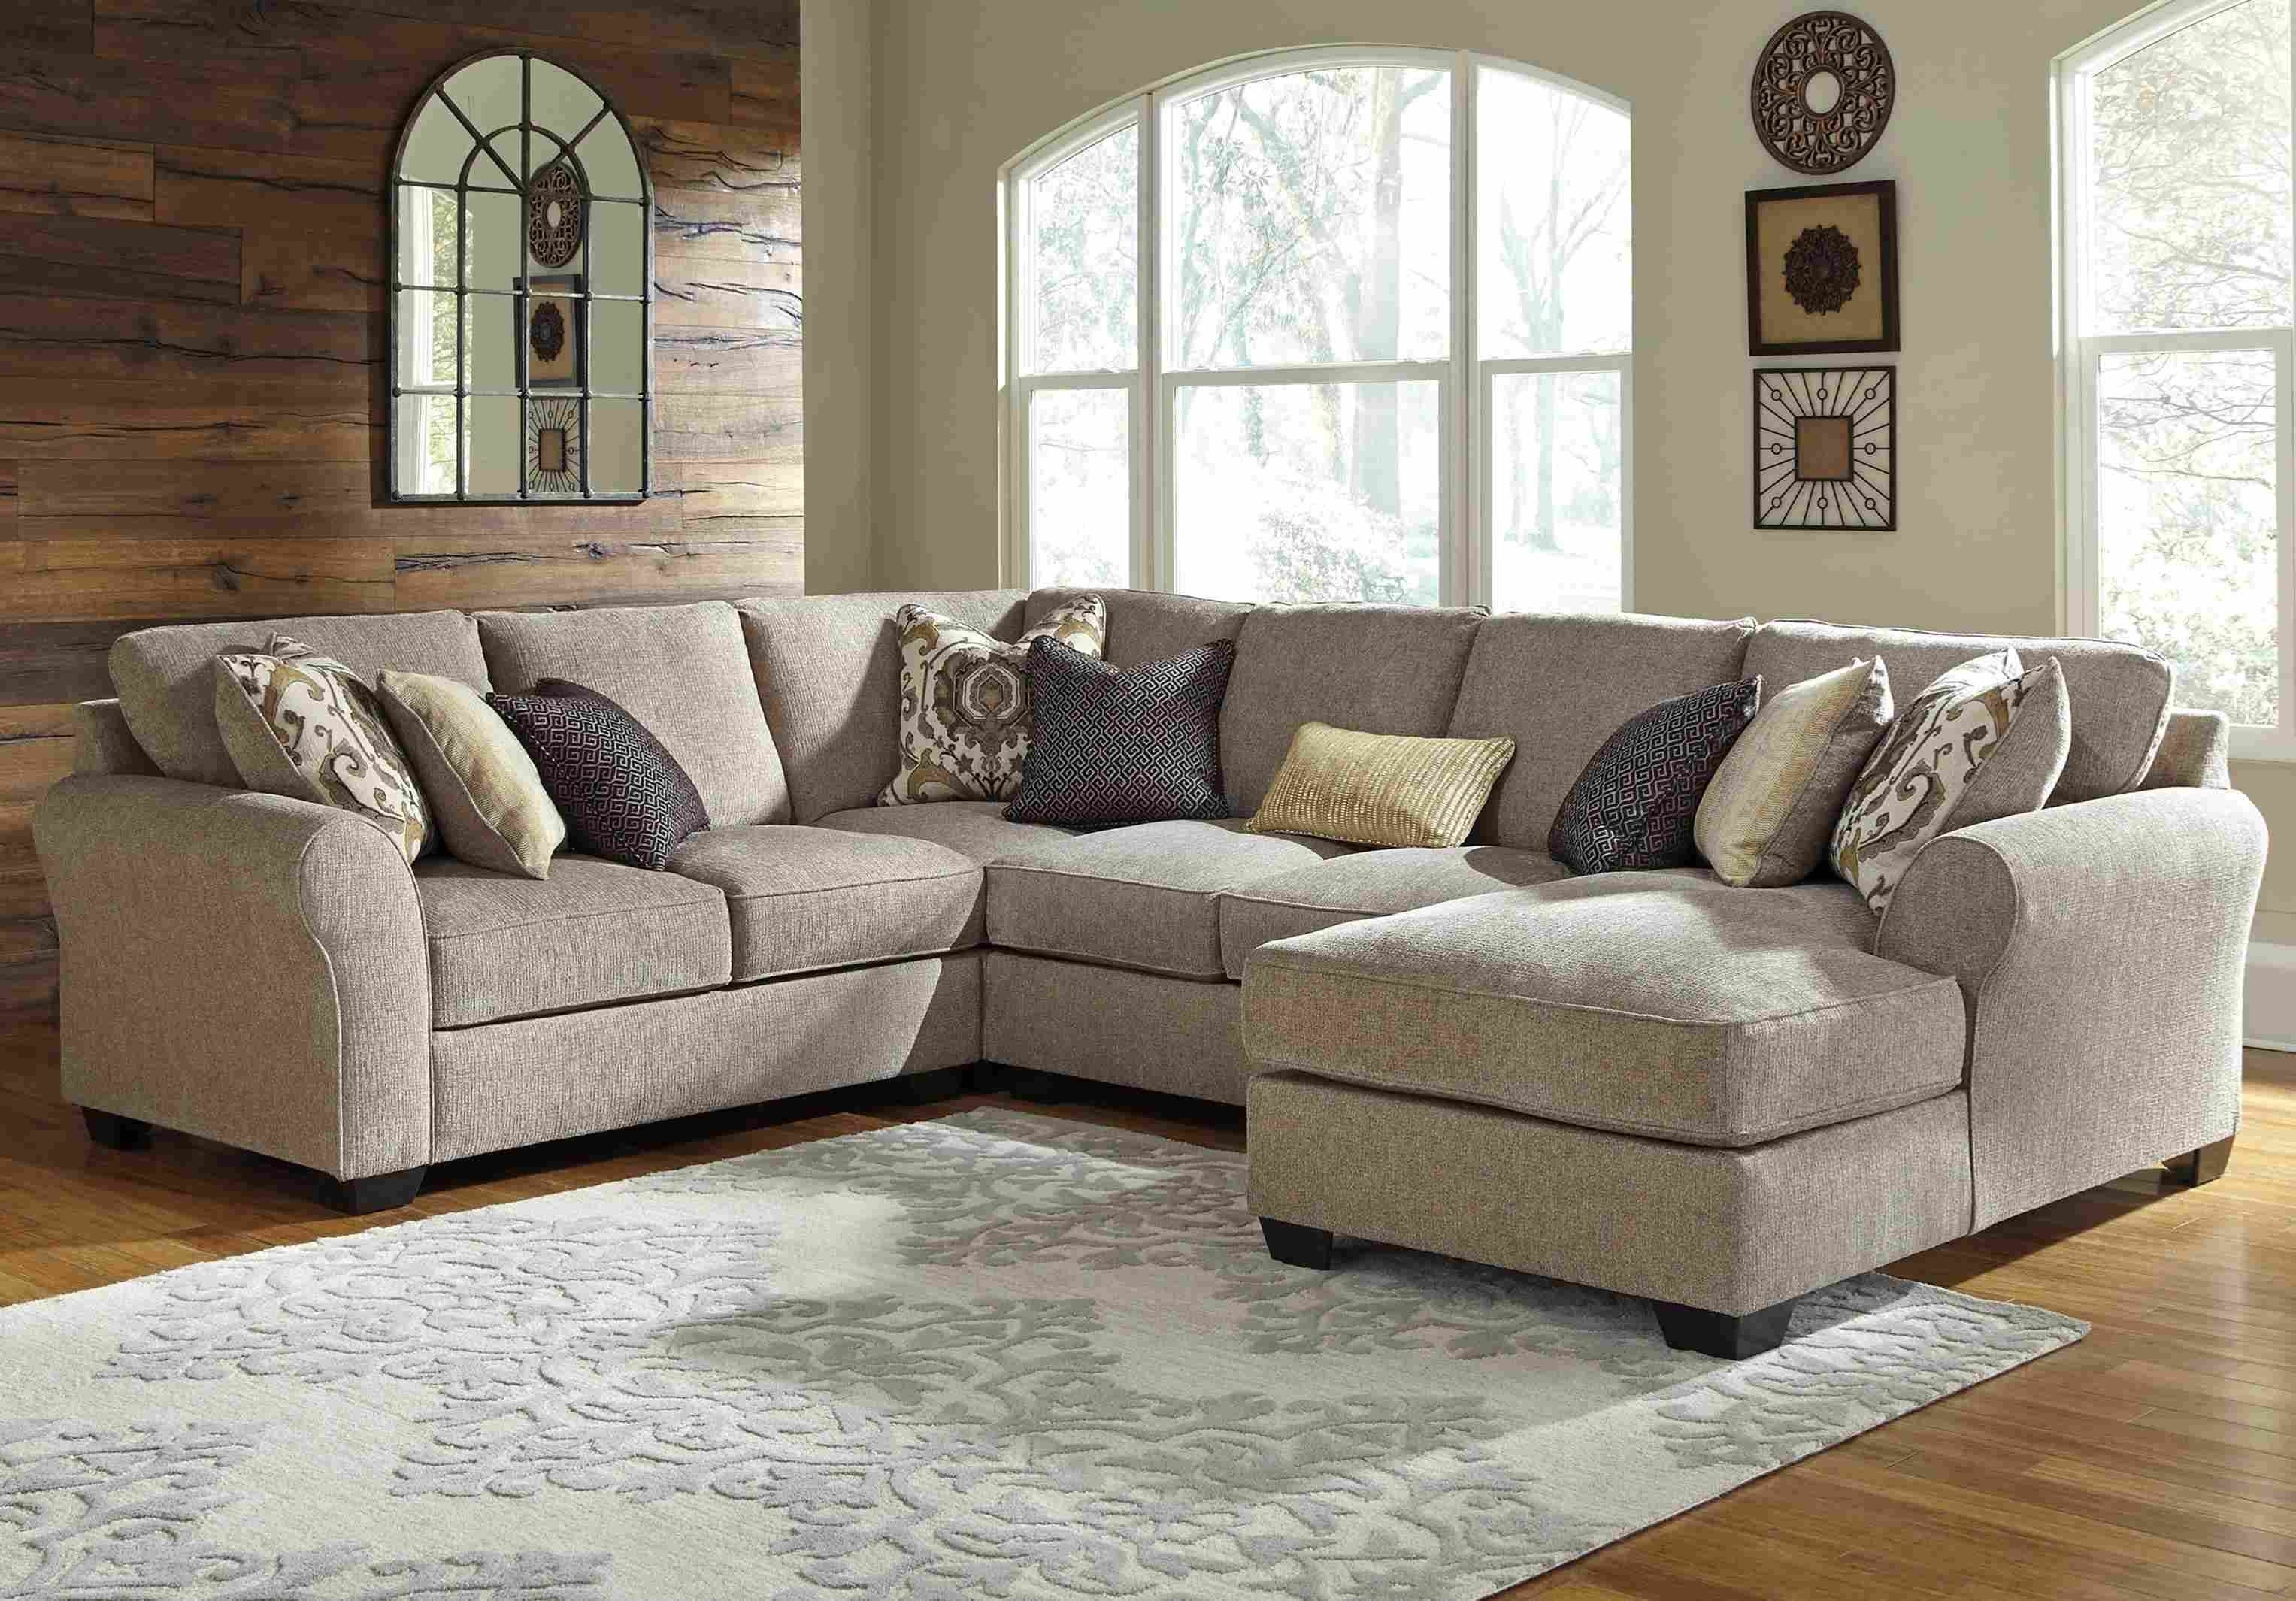 Microfiberctional Sofa With Chaise Amazing Photo Inspirations for Arrowmask 2 Piece Sectionals With Raf Chaise (Image 25 of 30)